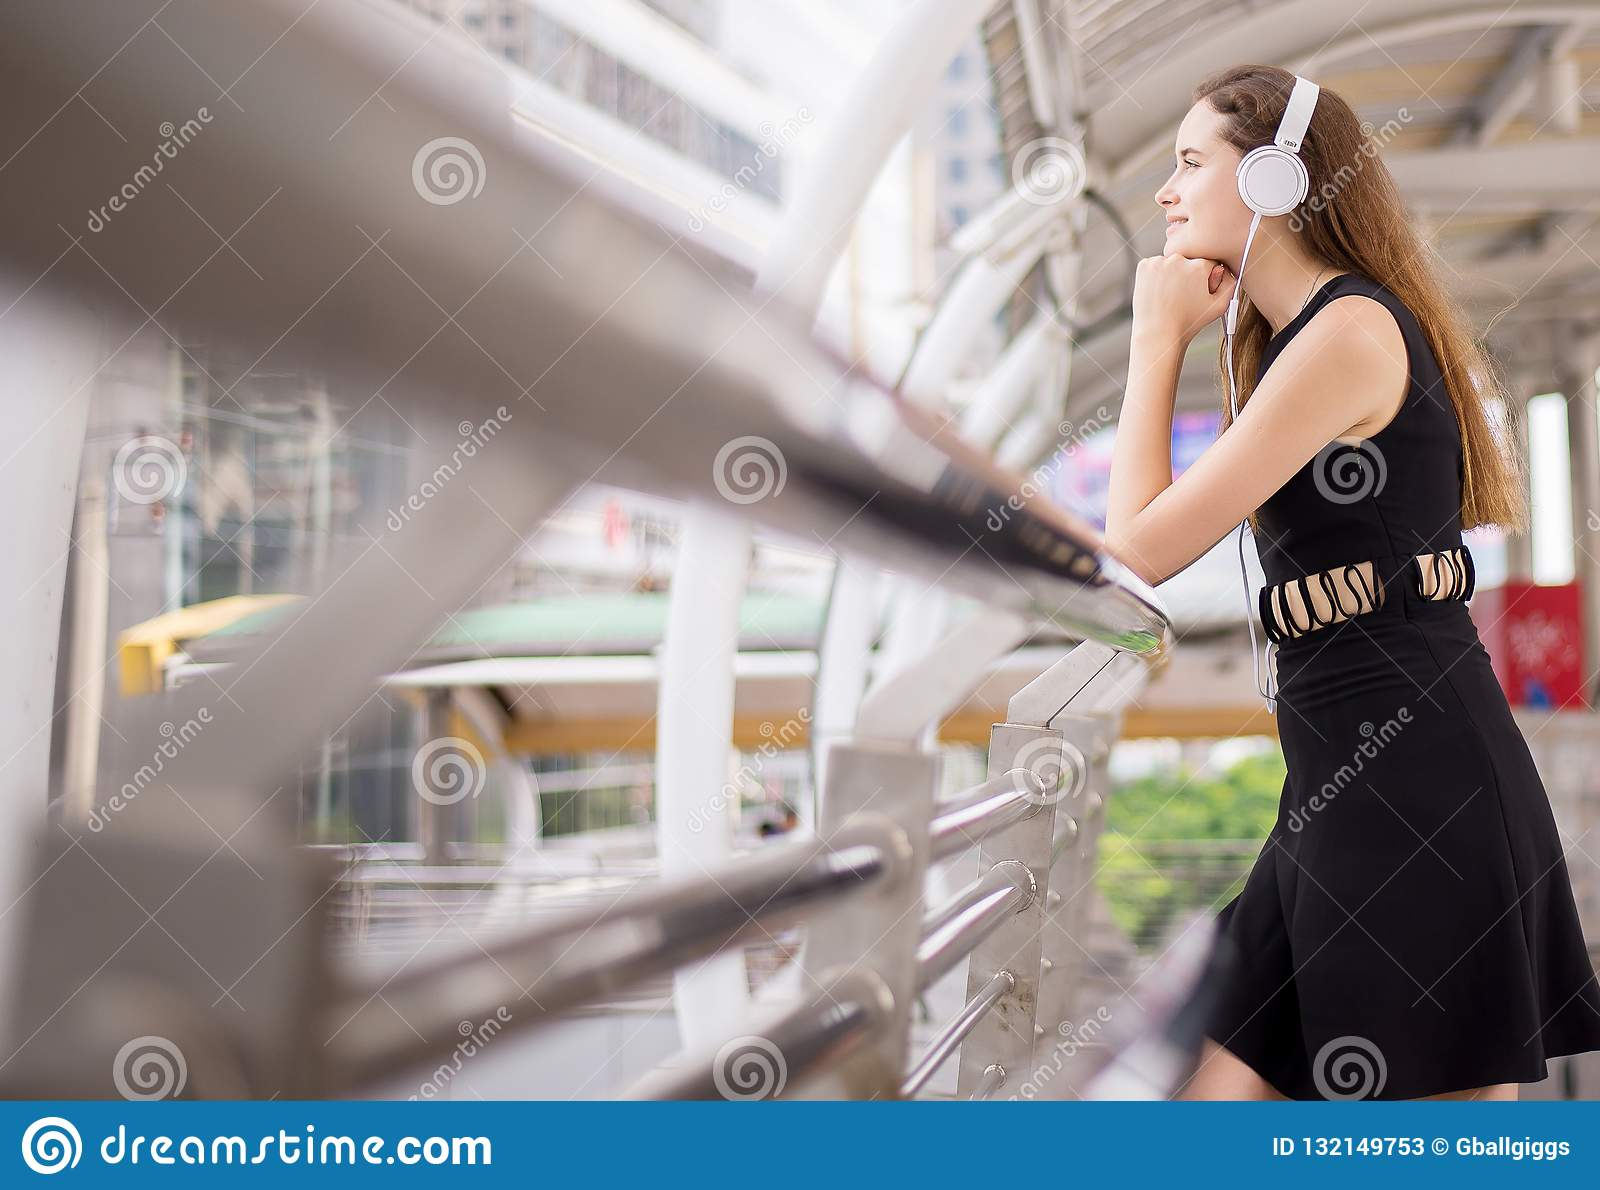 Beautiful young woman using headphones and listening to music in the city